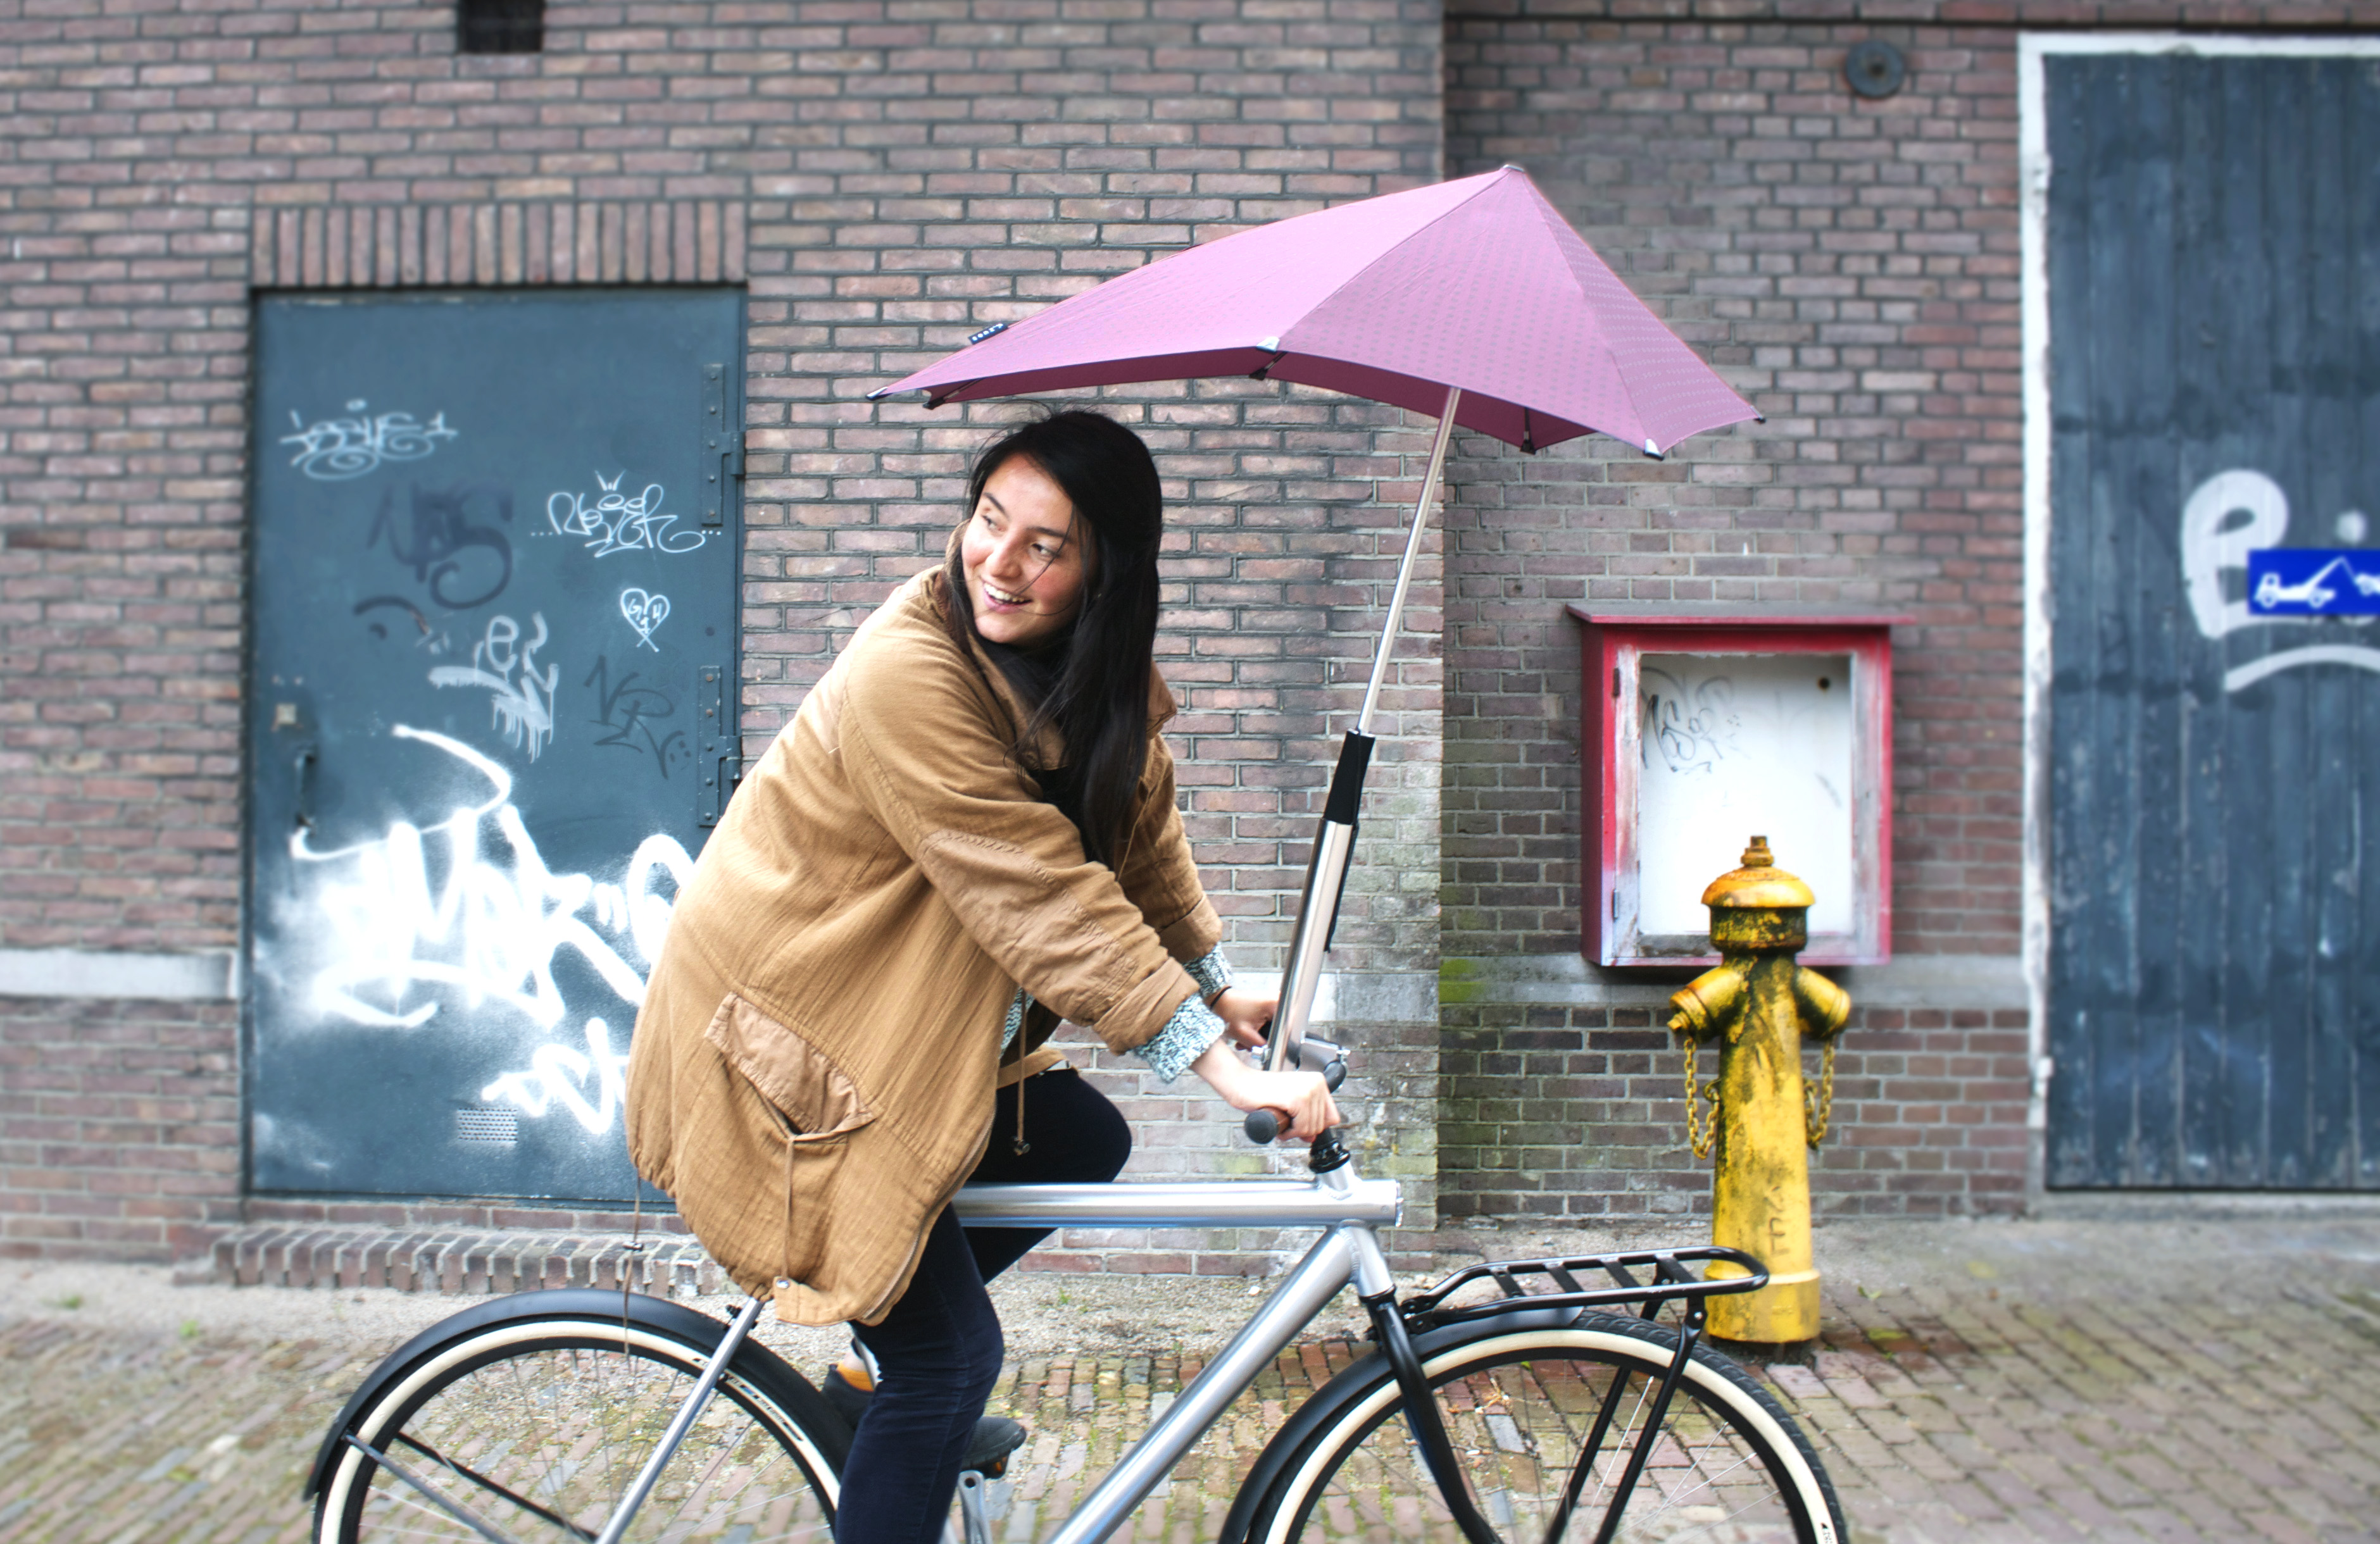 Dutch company Senz has created a handlebar-mounted umbrella holder to keep bike commuters dry on their way to work.